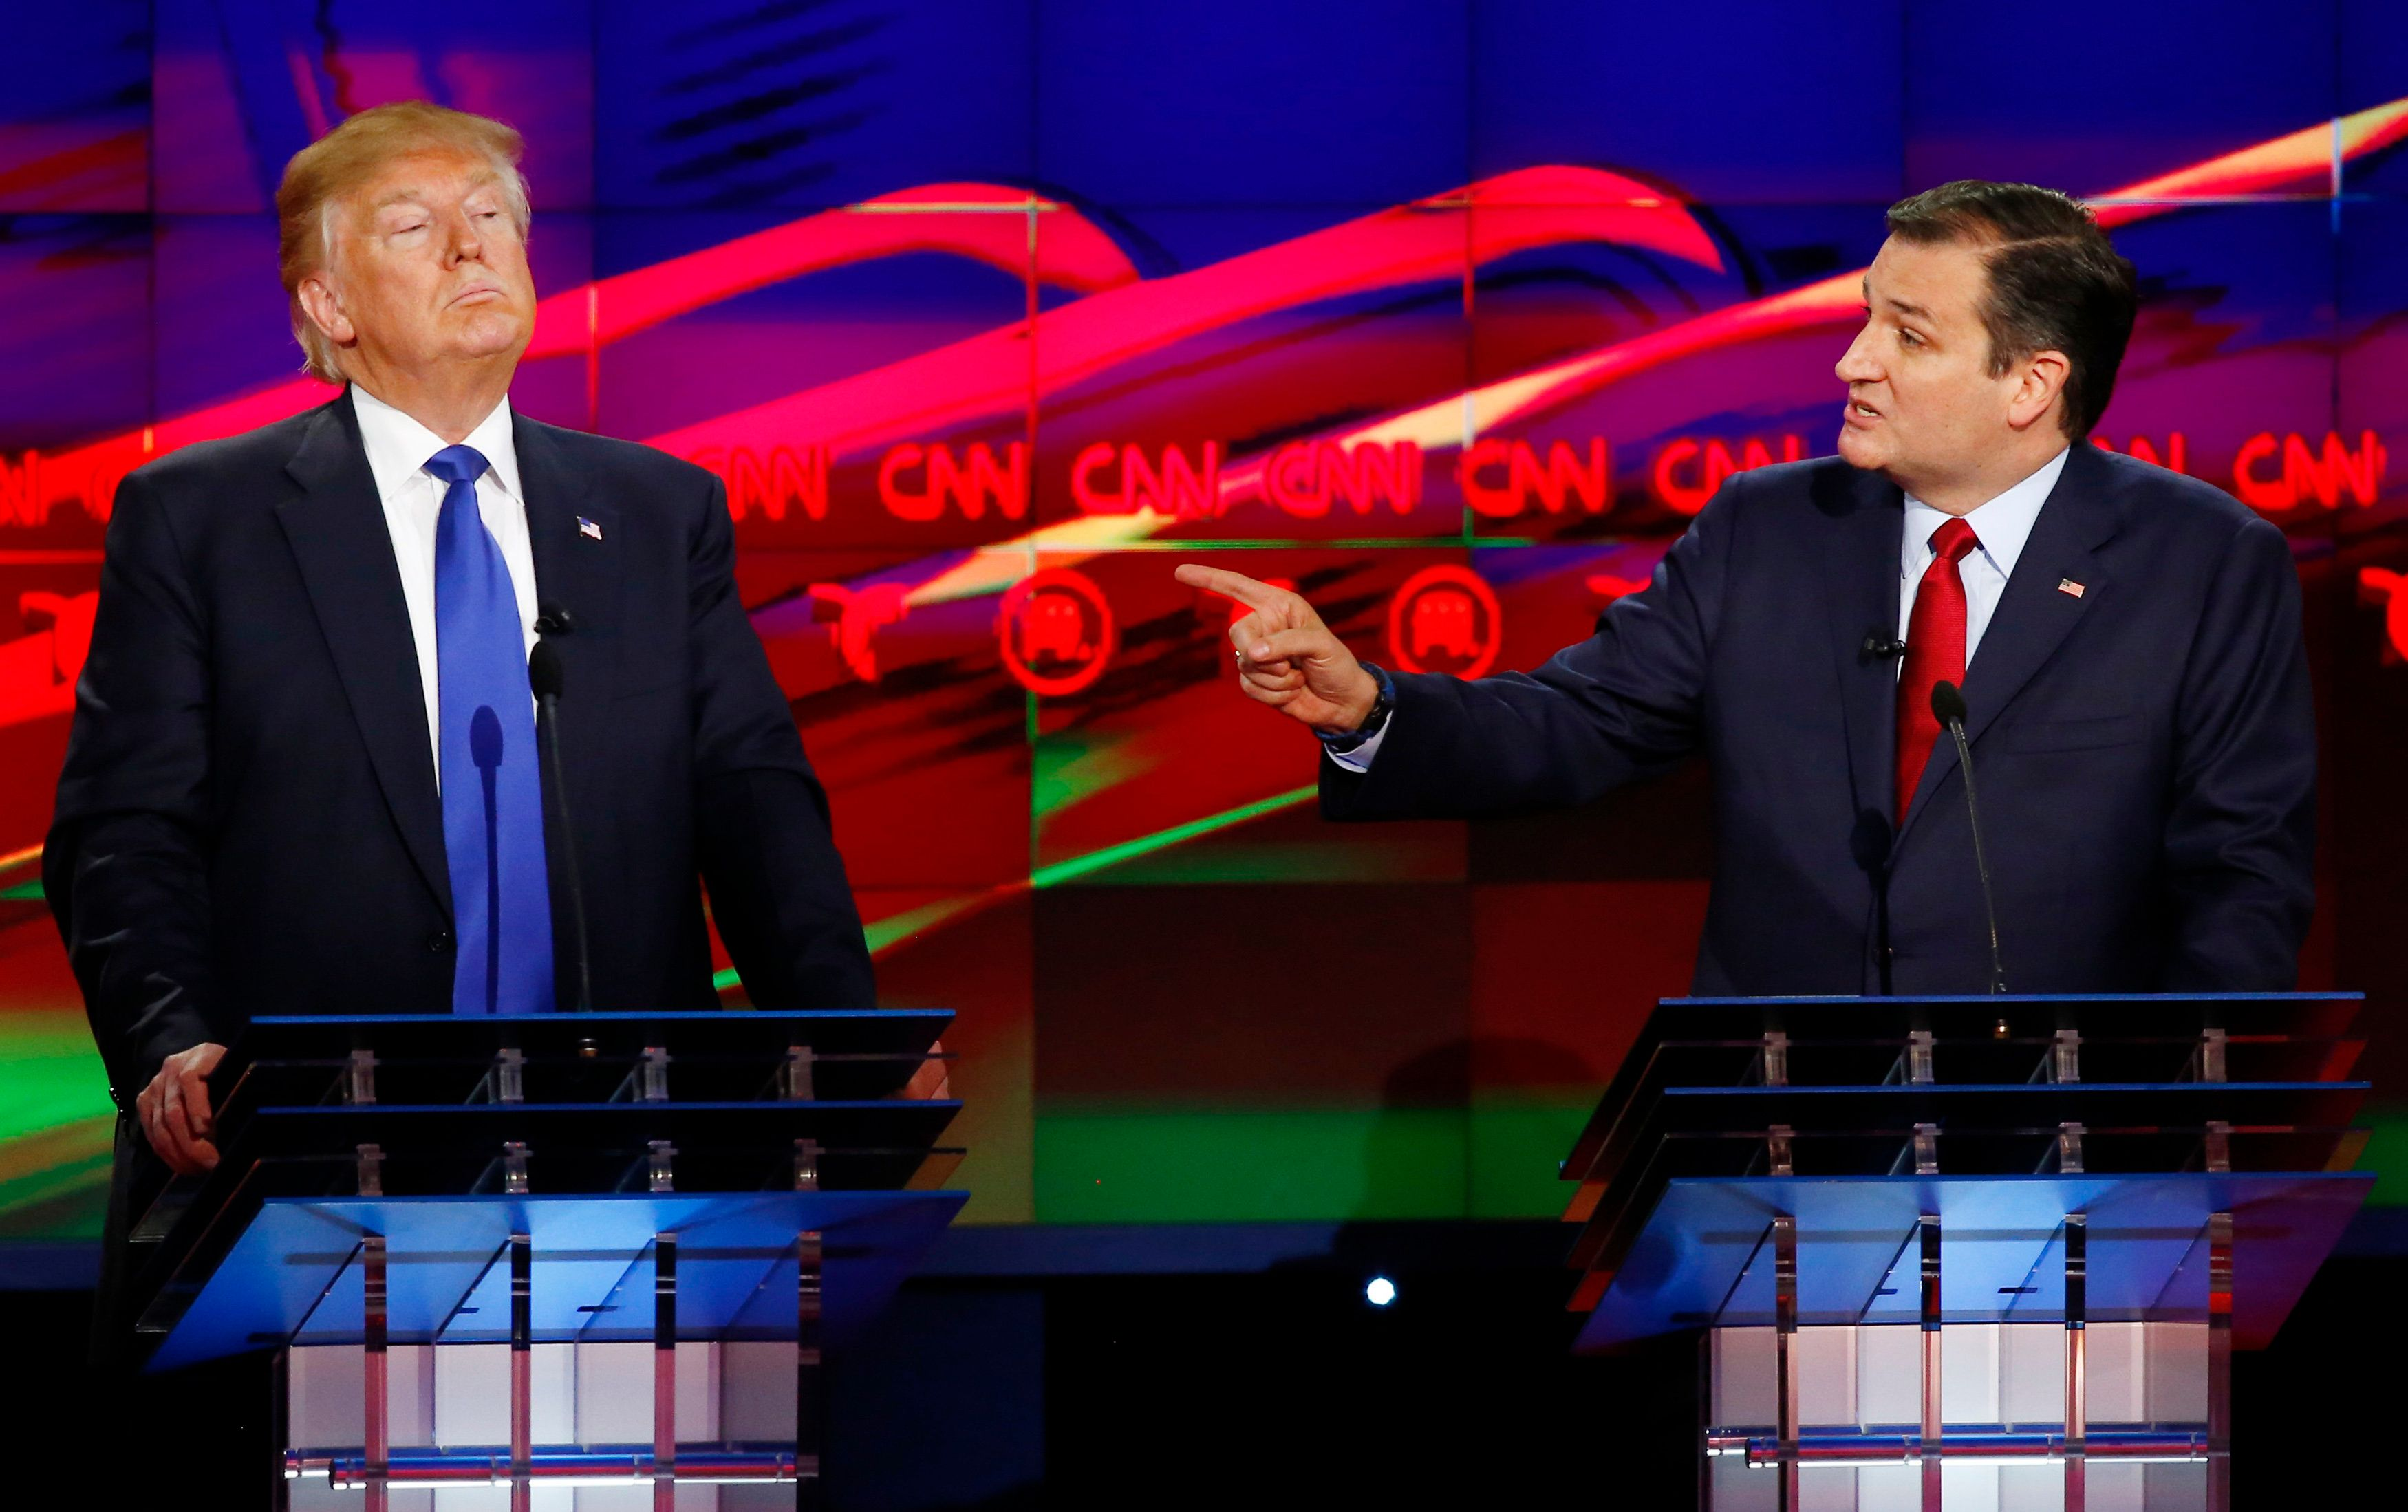 Republican U.S. presidential candidate Ted Cruz challenges rival Donald Trump (L) about releasing his tax returns during the debate sponsored by CNN for the 2016 Republican U.S. presidential candidates in Houston, Texas, February 25, 2016. REUTERS/Mike Stone/File Photo